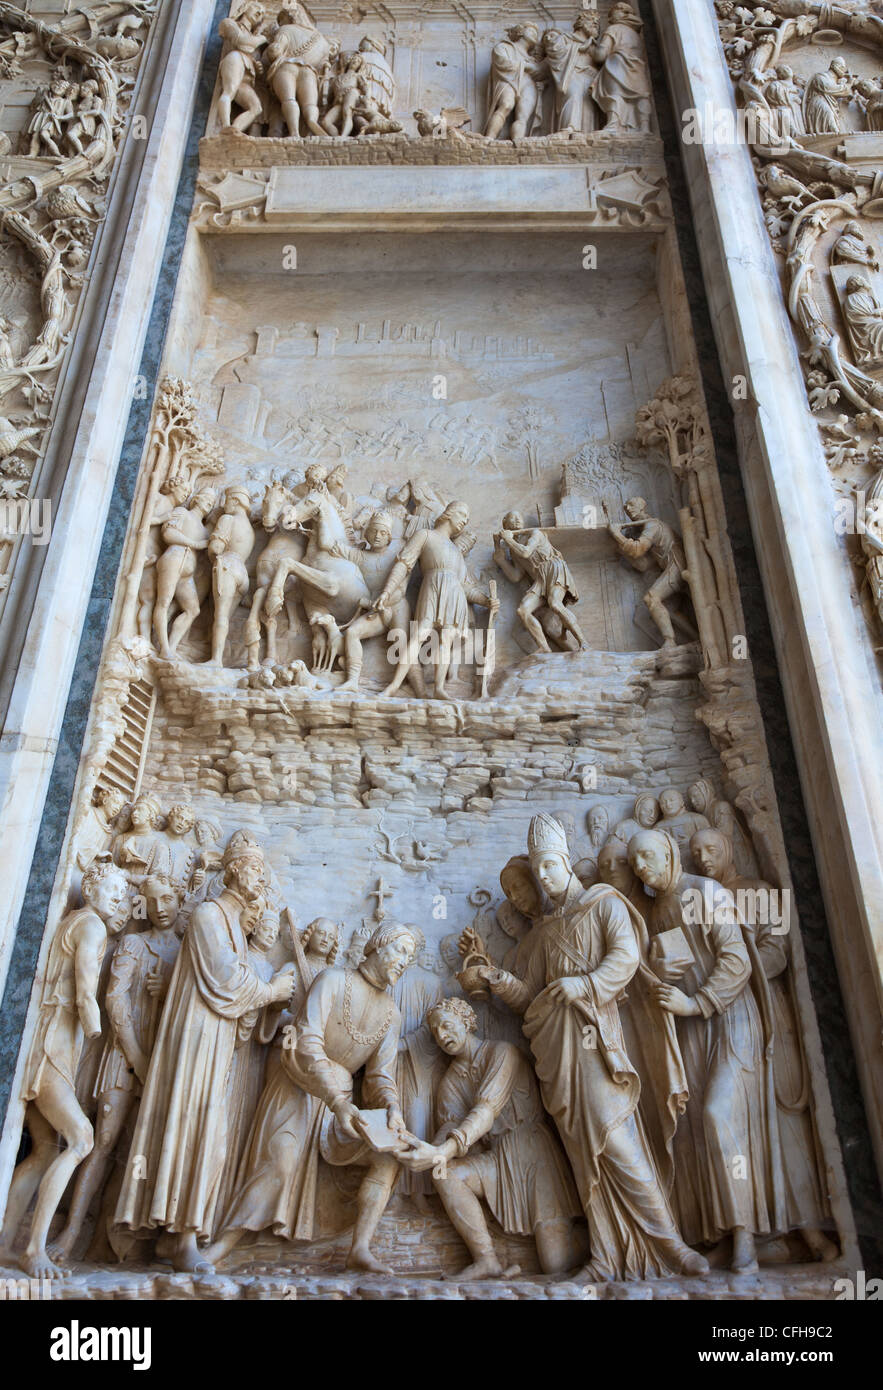 Italy, Lombardy, Pavia, the Certosa di Pavia, detail of the facade - Stock Image